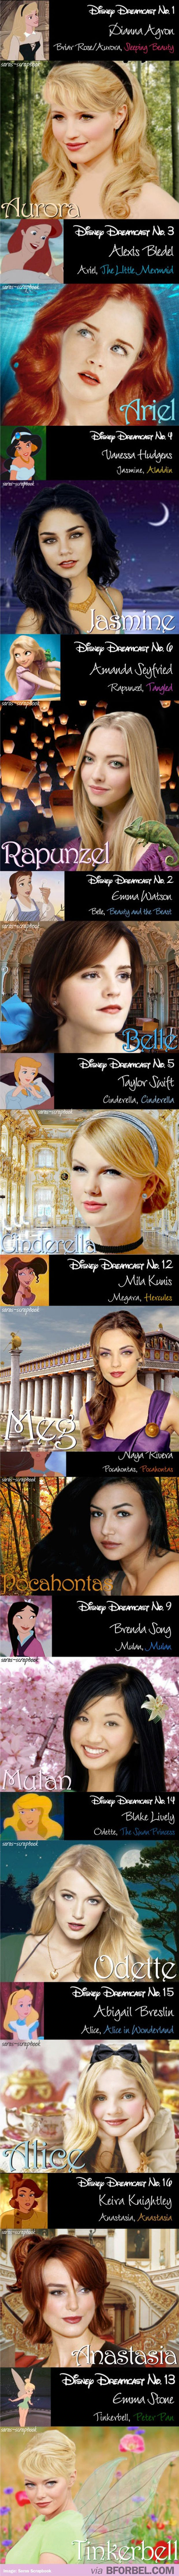 I think these are pretty accurate...except for Taylor Swift as Cinderella.